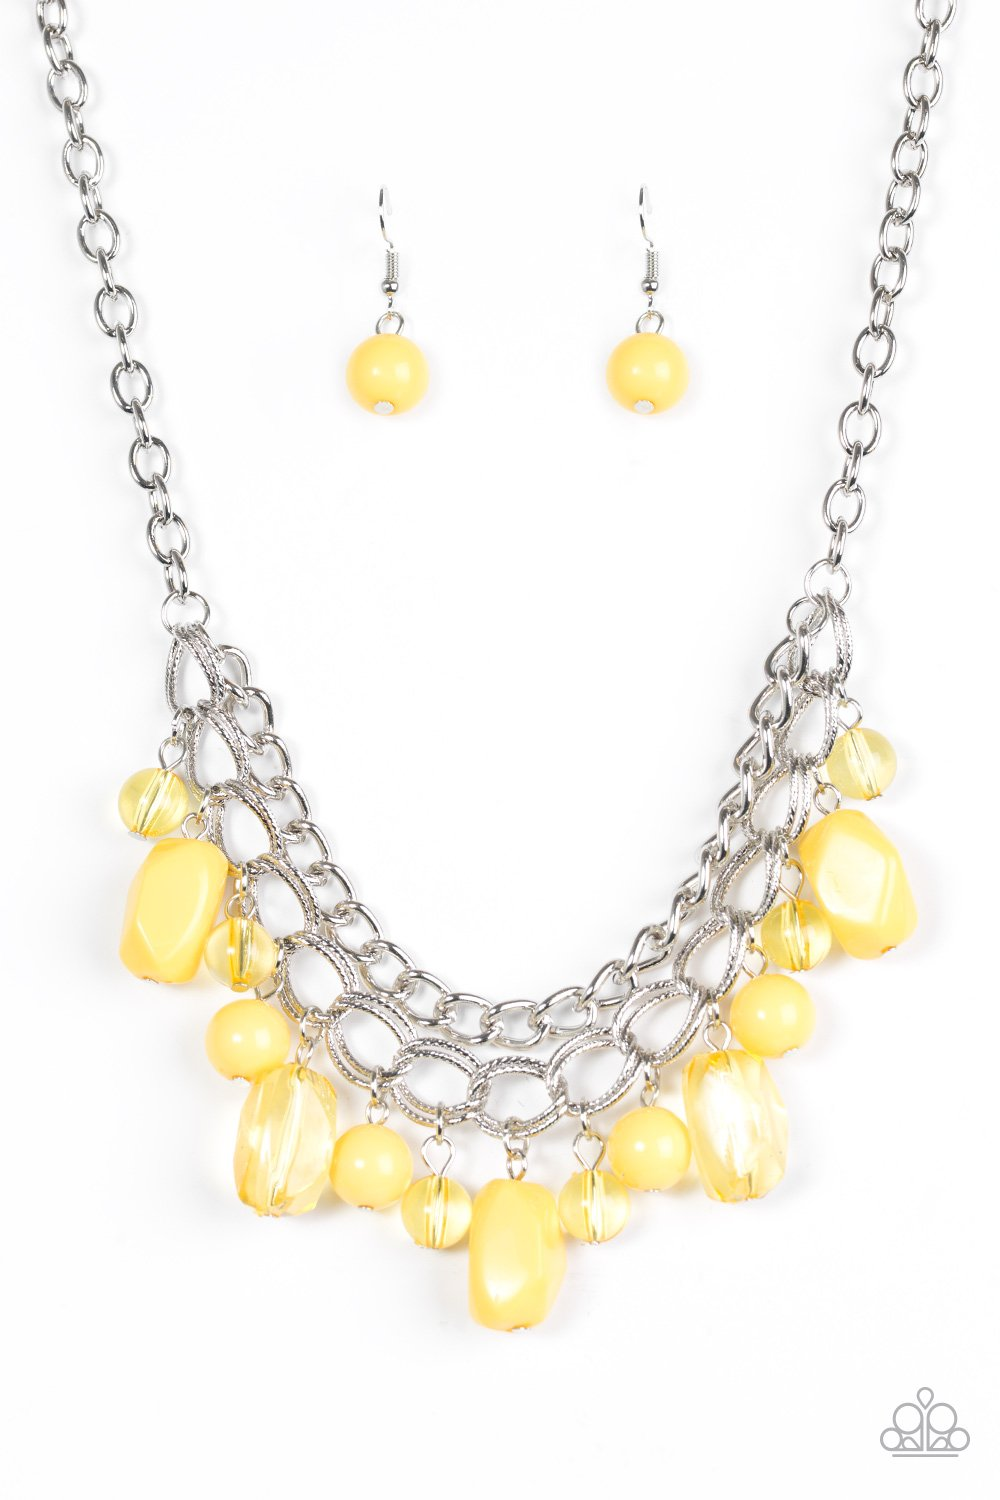 Paparazzi Accessories ~ Brazilian Bay - Yellow